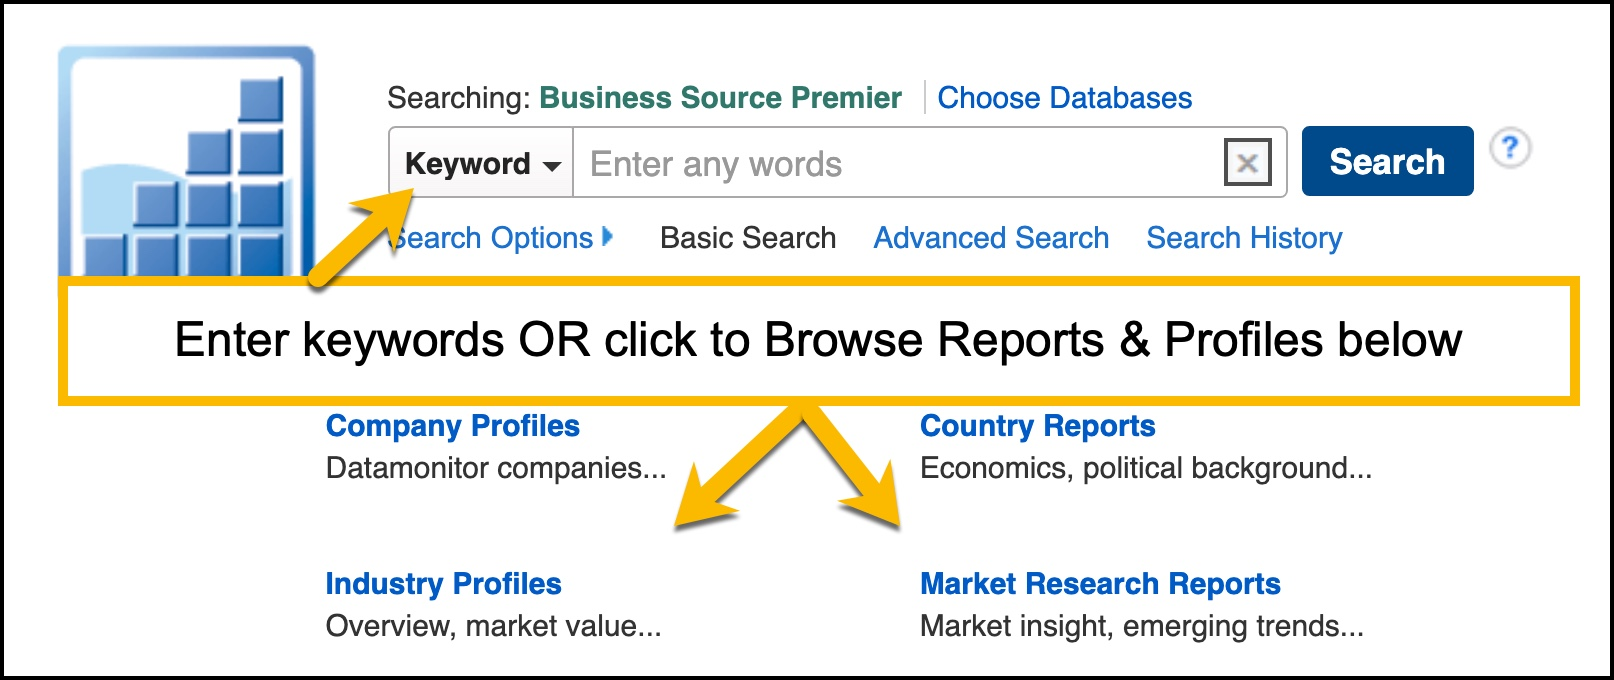 Interface for Business Source Premier with arrows showing browsing reports OR basic keywroding